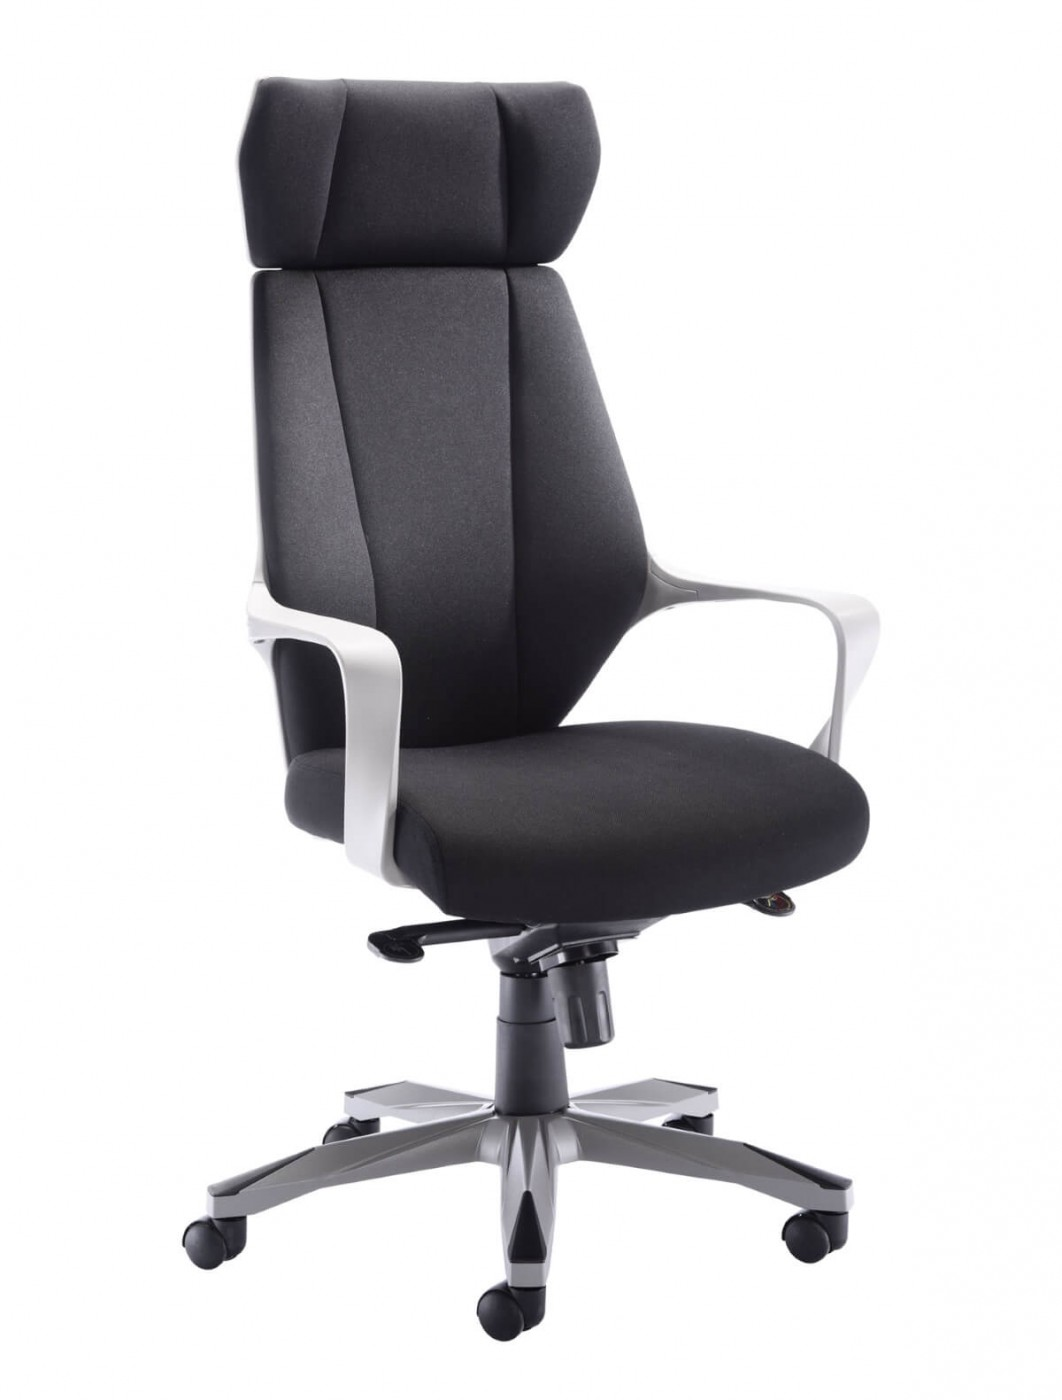 Office chairs rocky fabric office chair ch1783grbk enlarged view